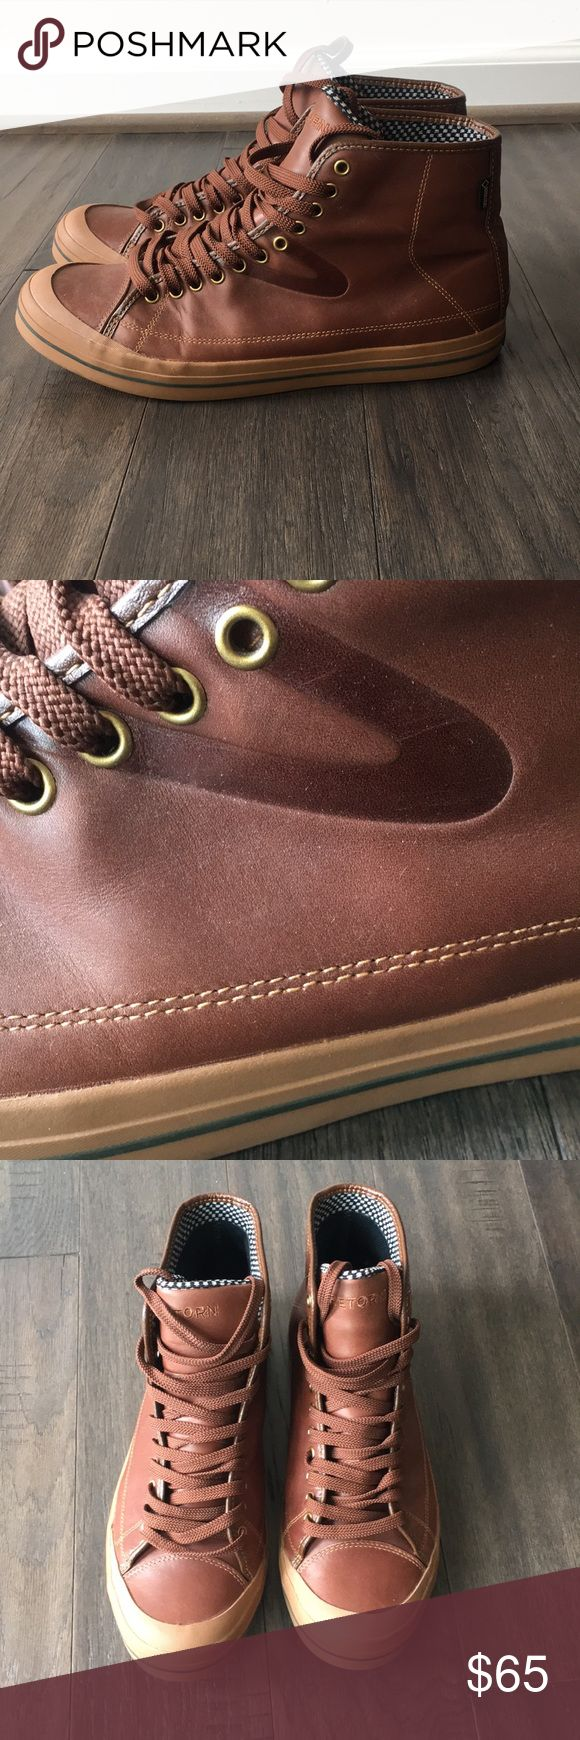 Leather high top Tretorn Mens very gently worn brown leather Tretorn high tops.  Brown laces with brass colored grommet lace ups.  Bubblegum soles.   Clean and classic. Tretorn Shoes Sneakers